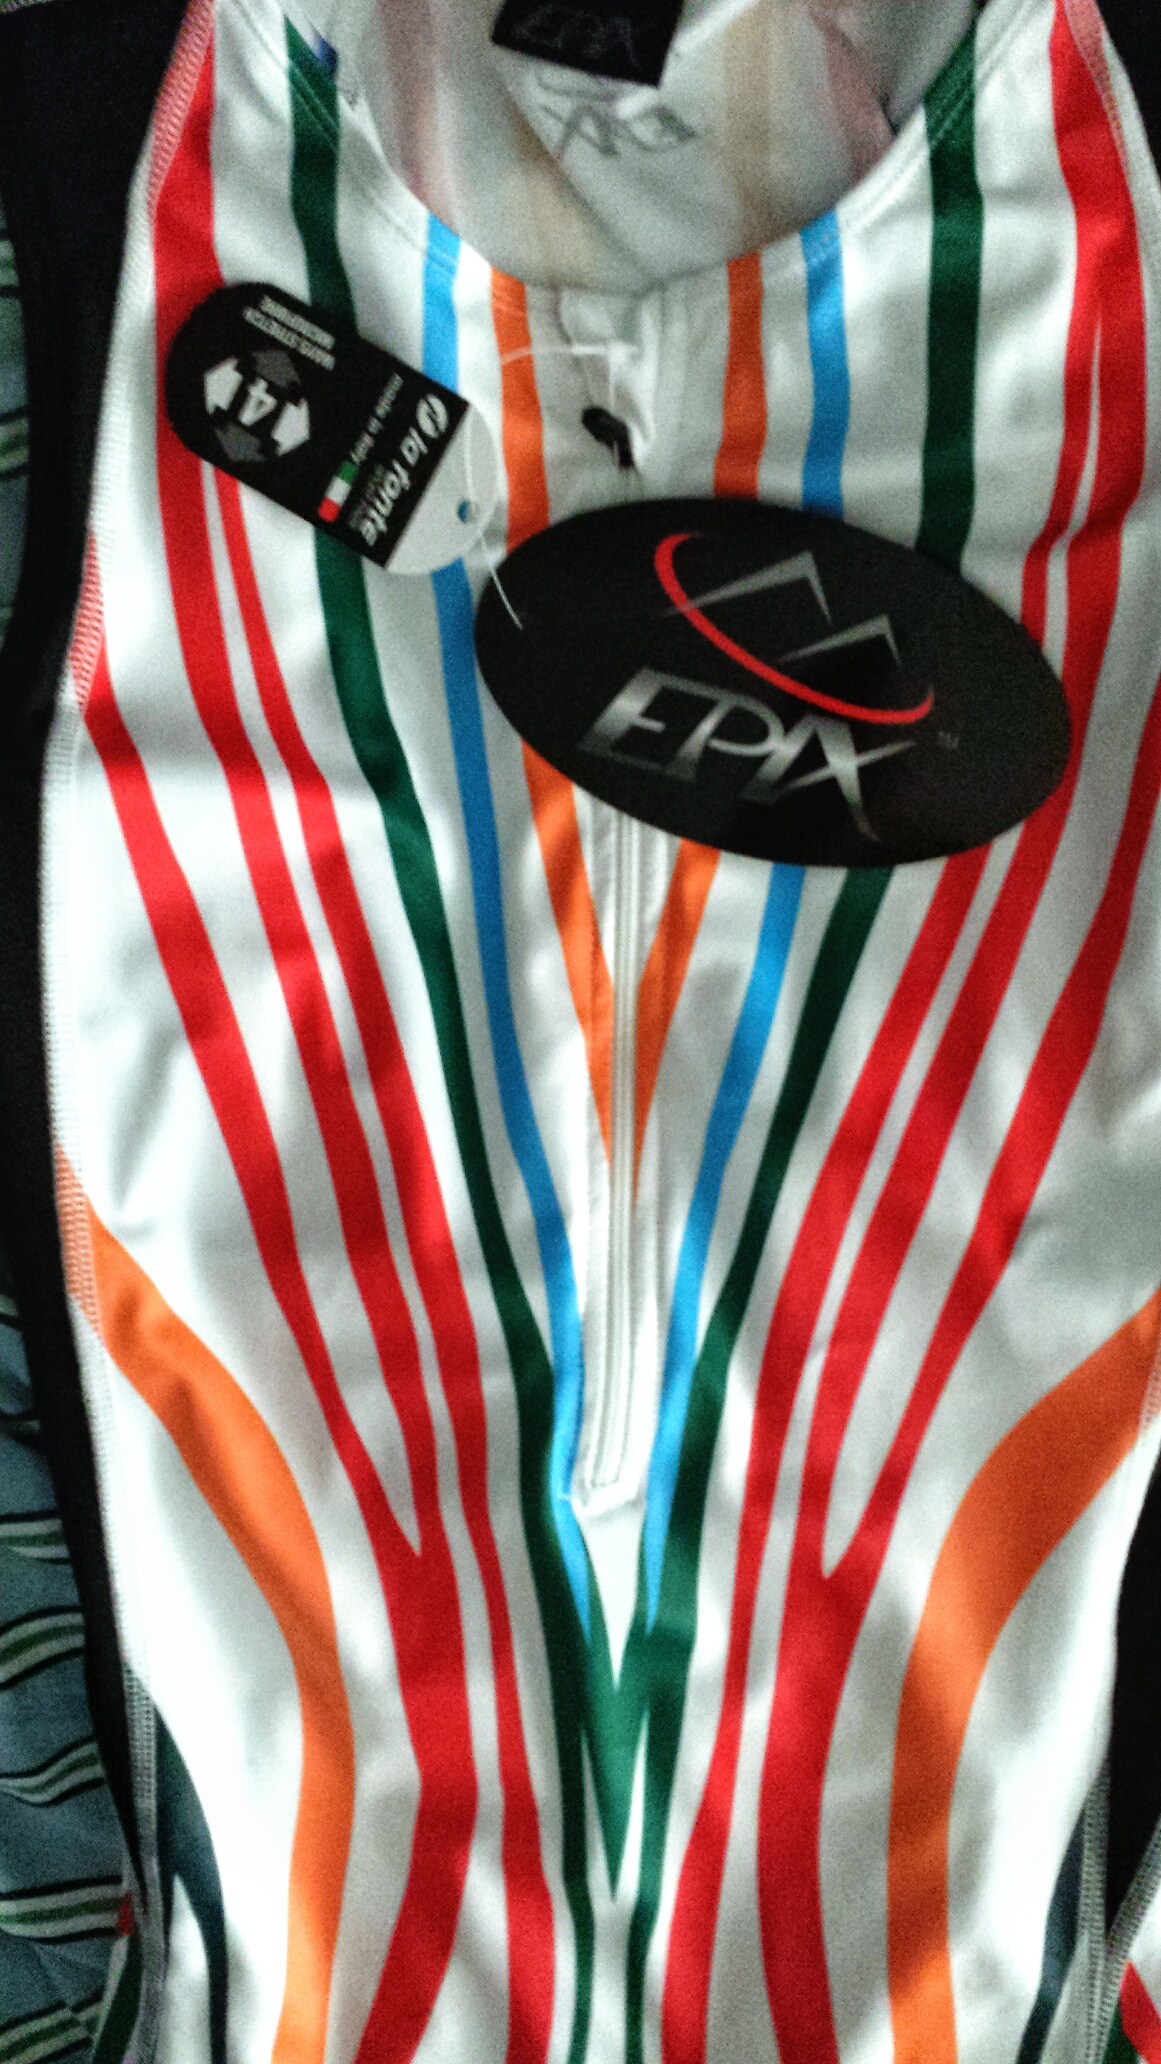 Cold as Ice and a quick Epix Gear tri suit review